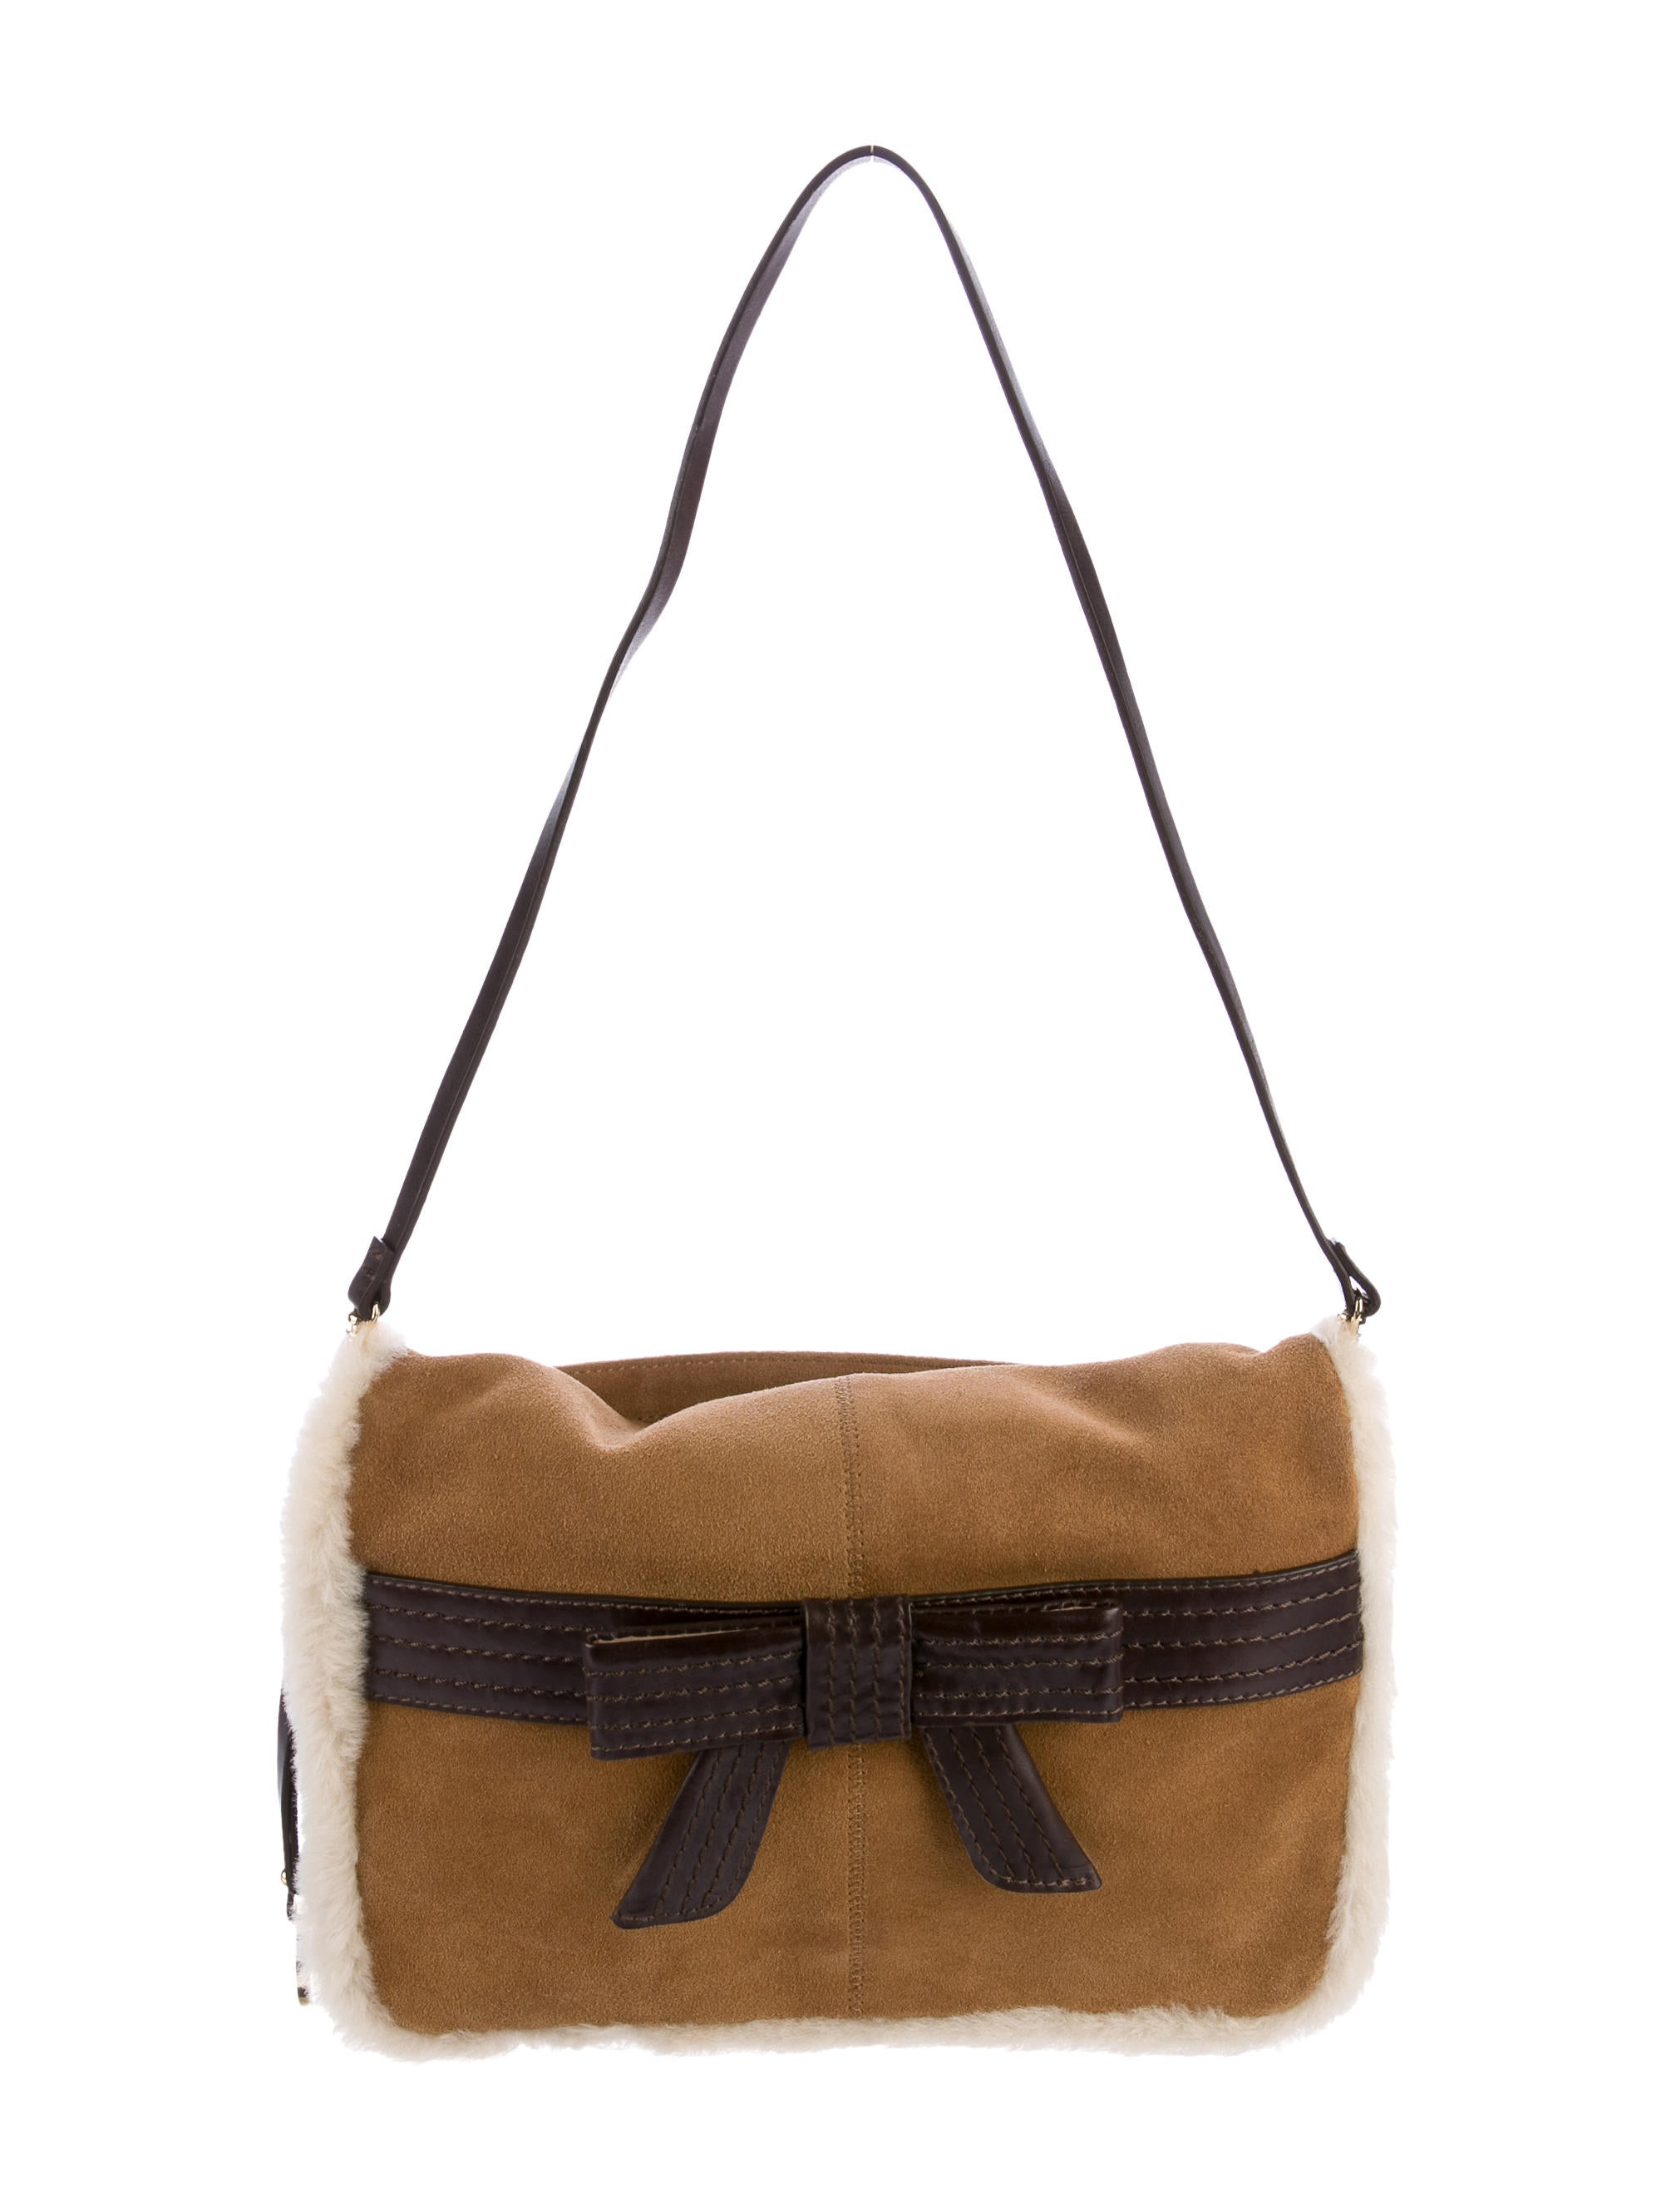 Buy Shoulder Bags Online in Australia, Compare Prices of Products from 29 Stores. Lowest Price is. Save with dirtyinstalzonevx6.ga!